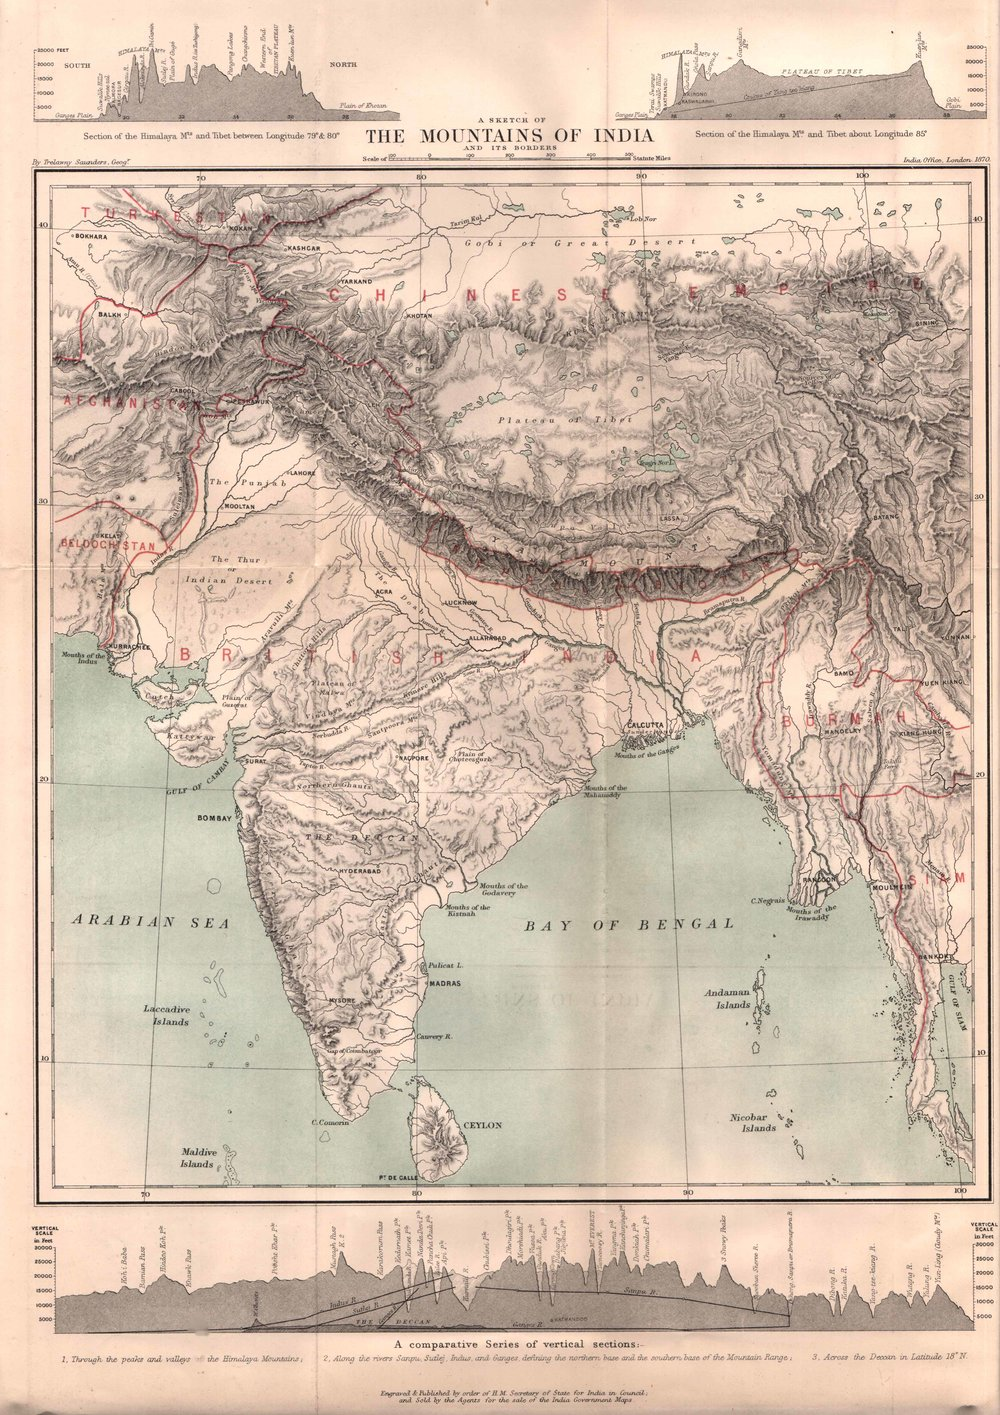 1870 Mountains of India and its borders.jpg